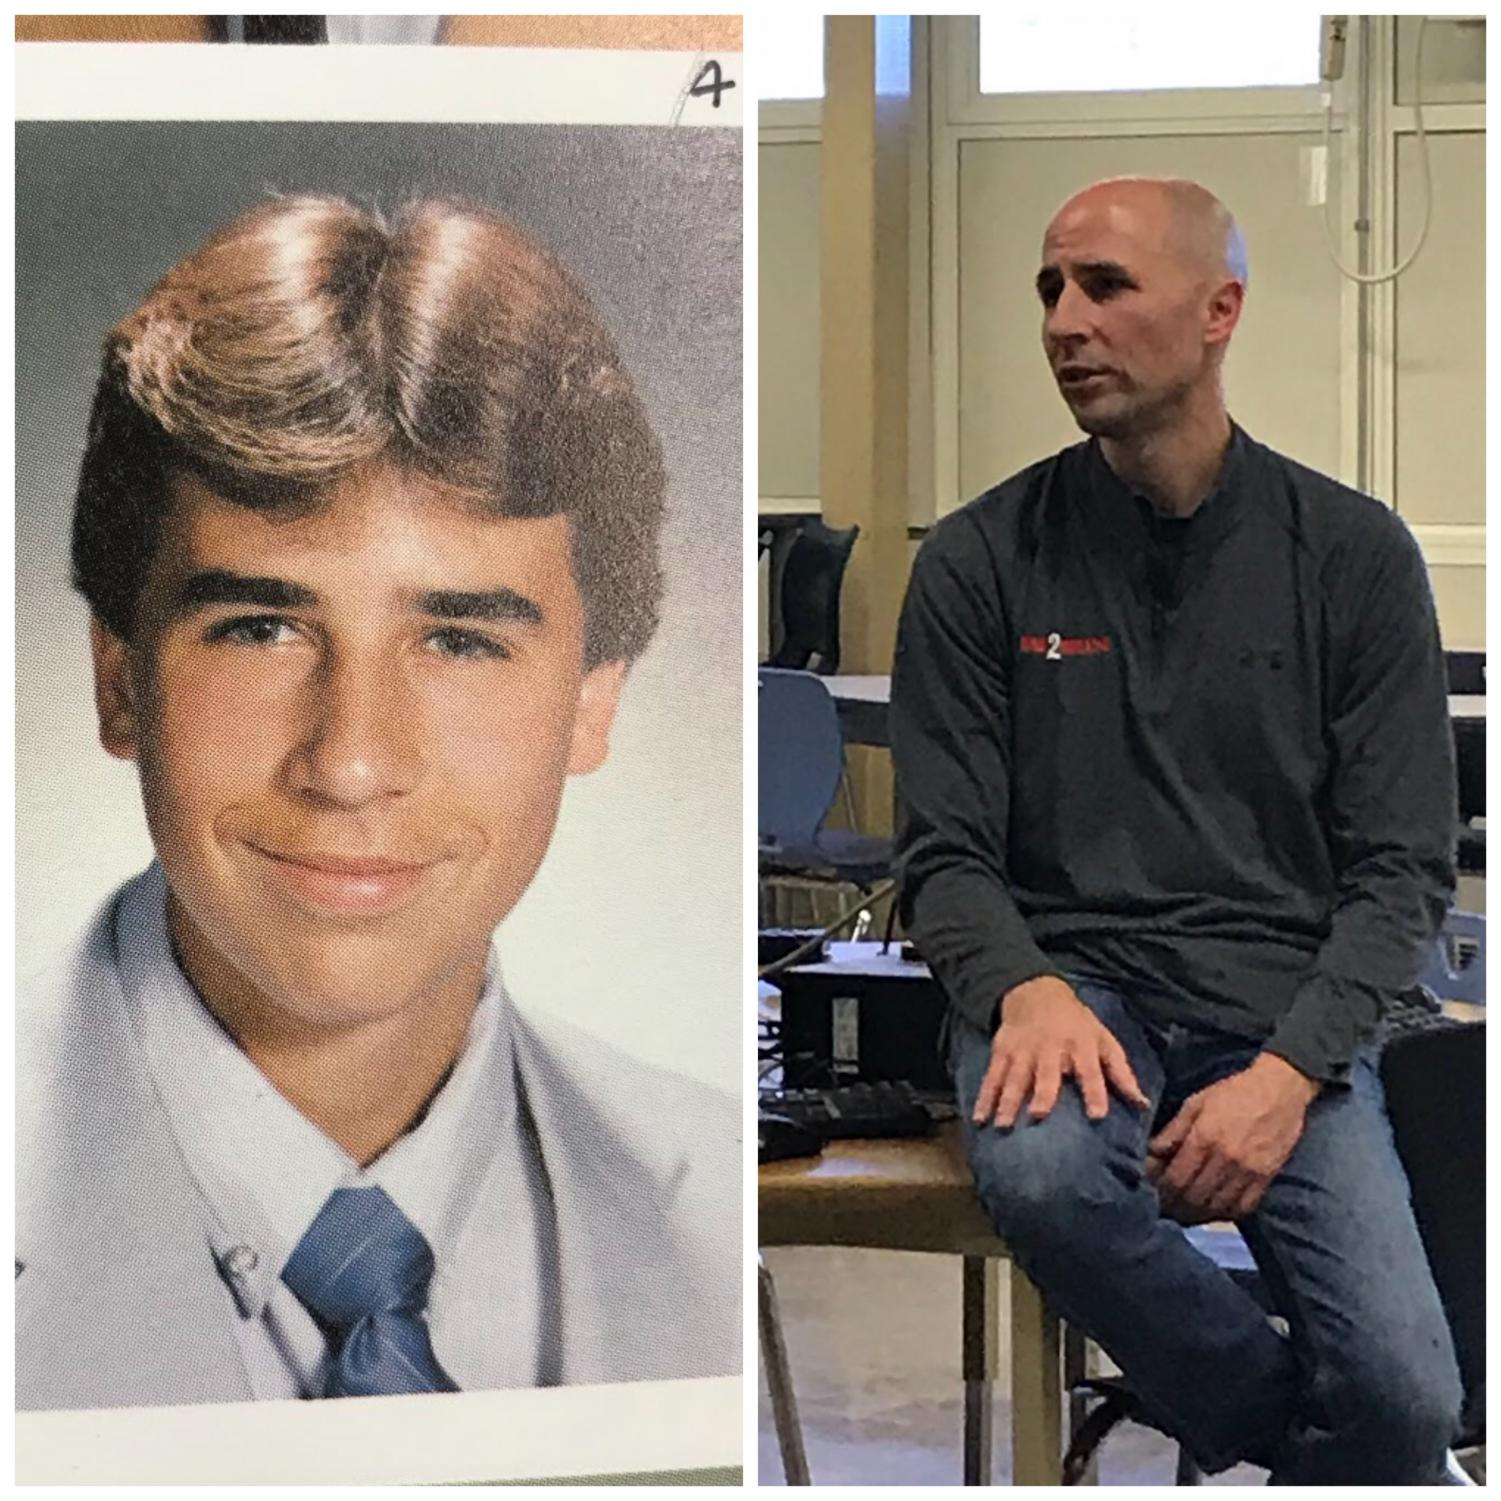 It has been a little over 30 years since Al Dukes walked the halls of CHS (left) to where he is now (right).